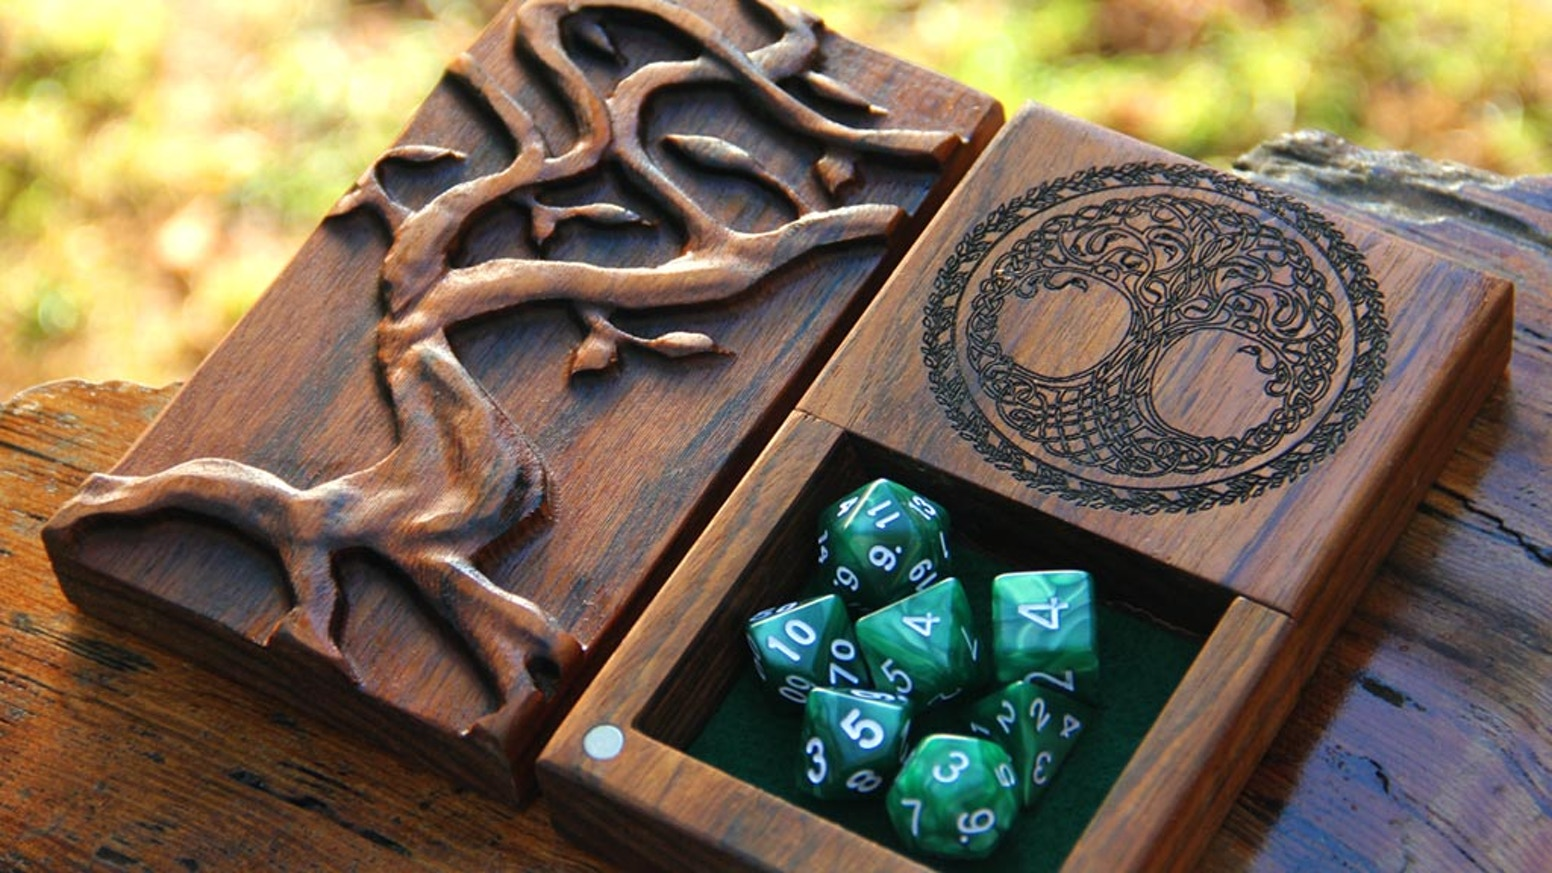 Personalized Dice Tower designed for travel and dice storage. Fully sculpted back, engraved front, and loads of customization options.